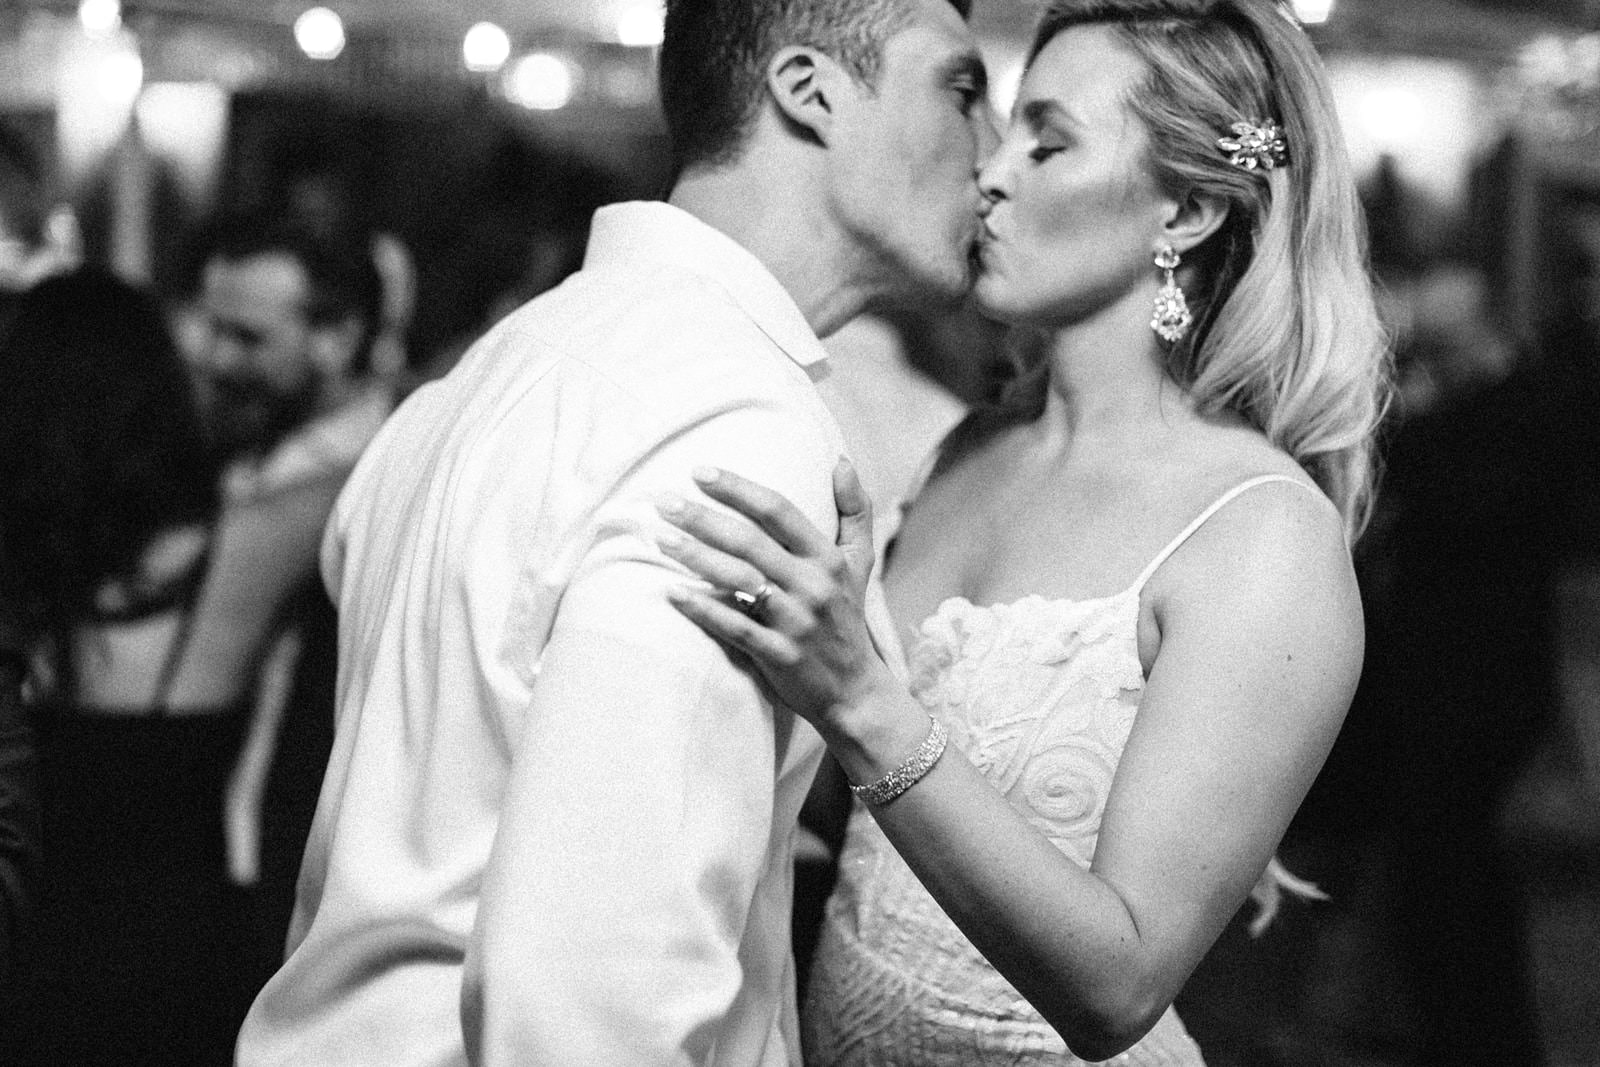 Black and white picture of bride and groom kissing.